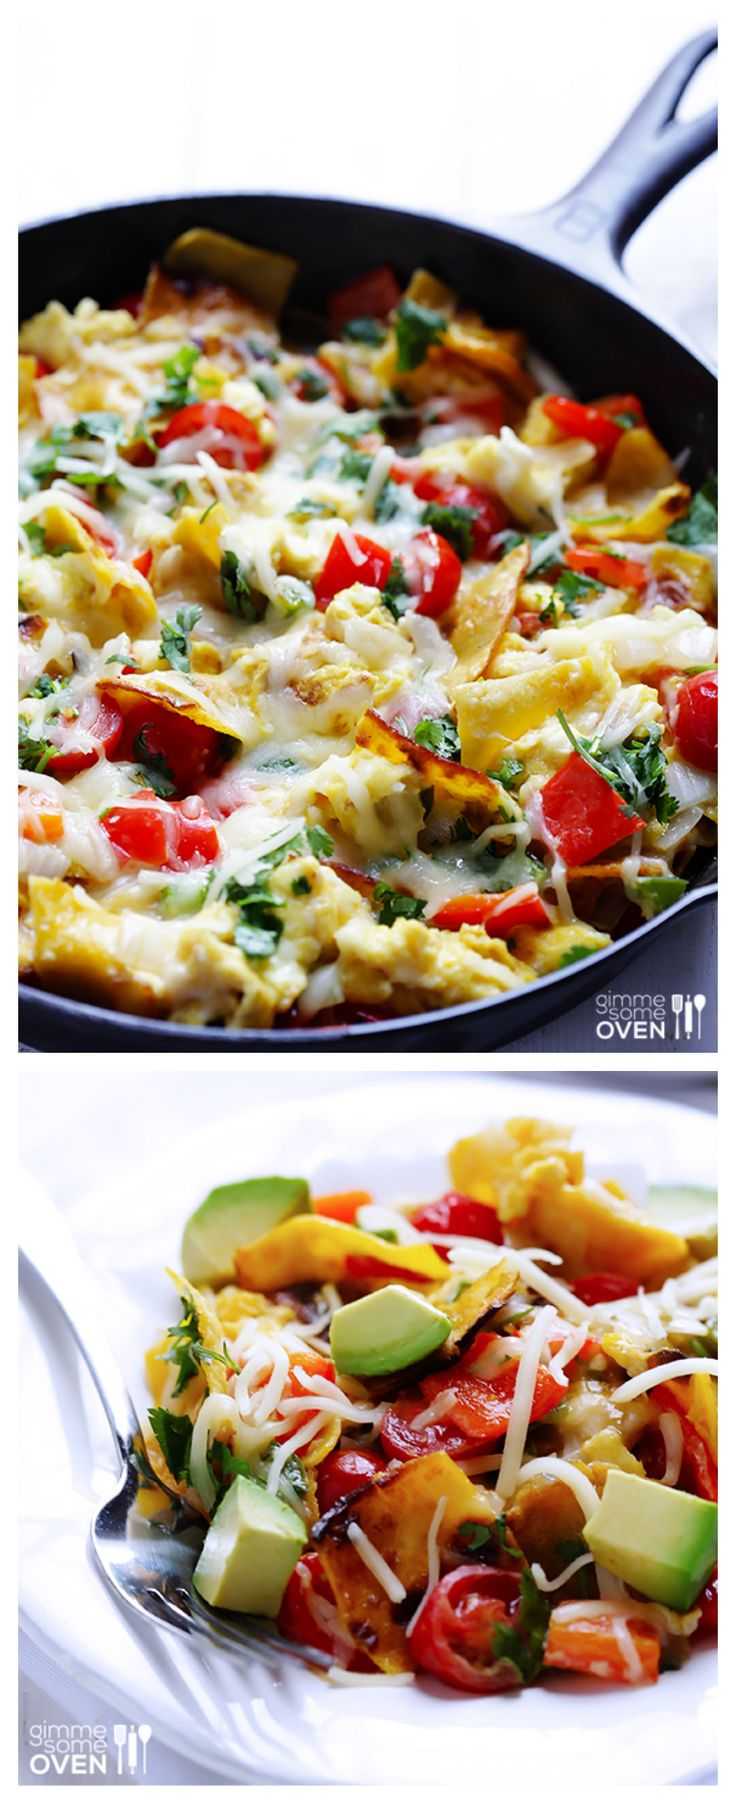 scrambled eggs tuscan scrambled eggs migas eggs with corn tortillas ...